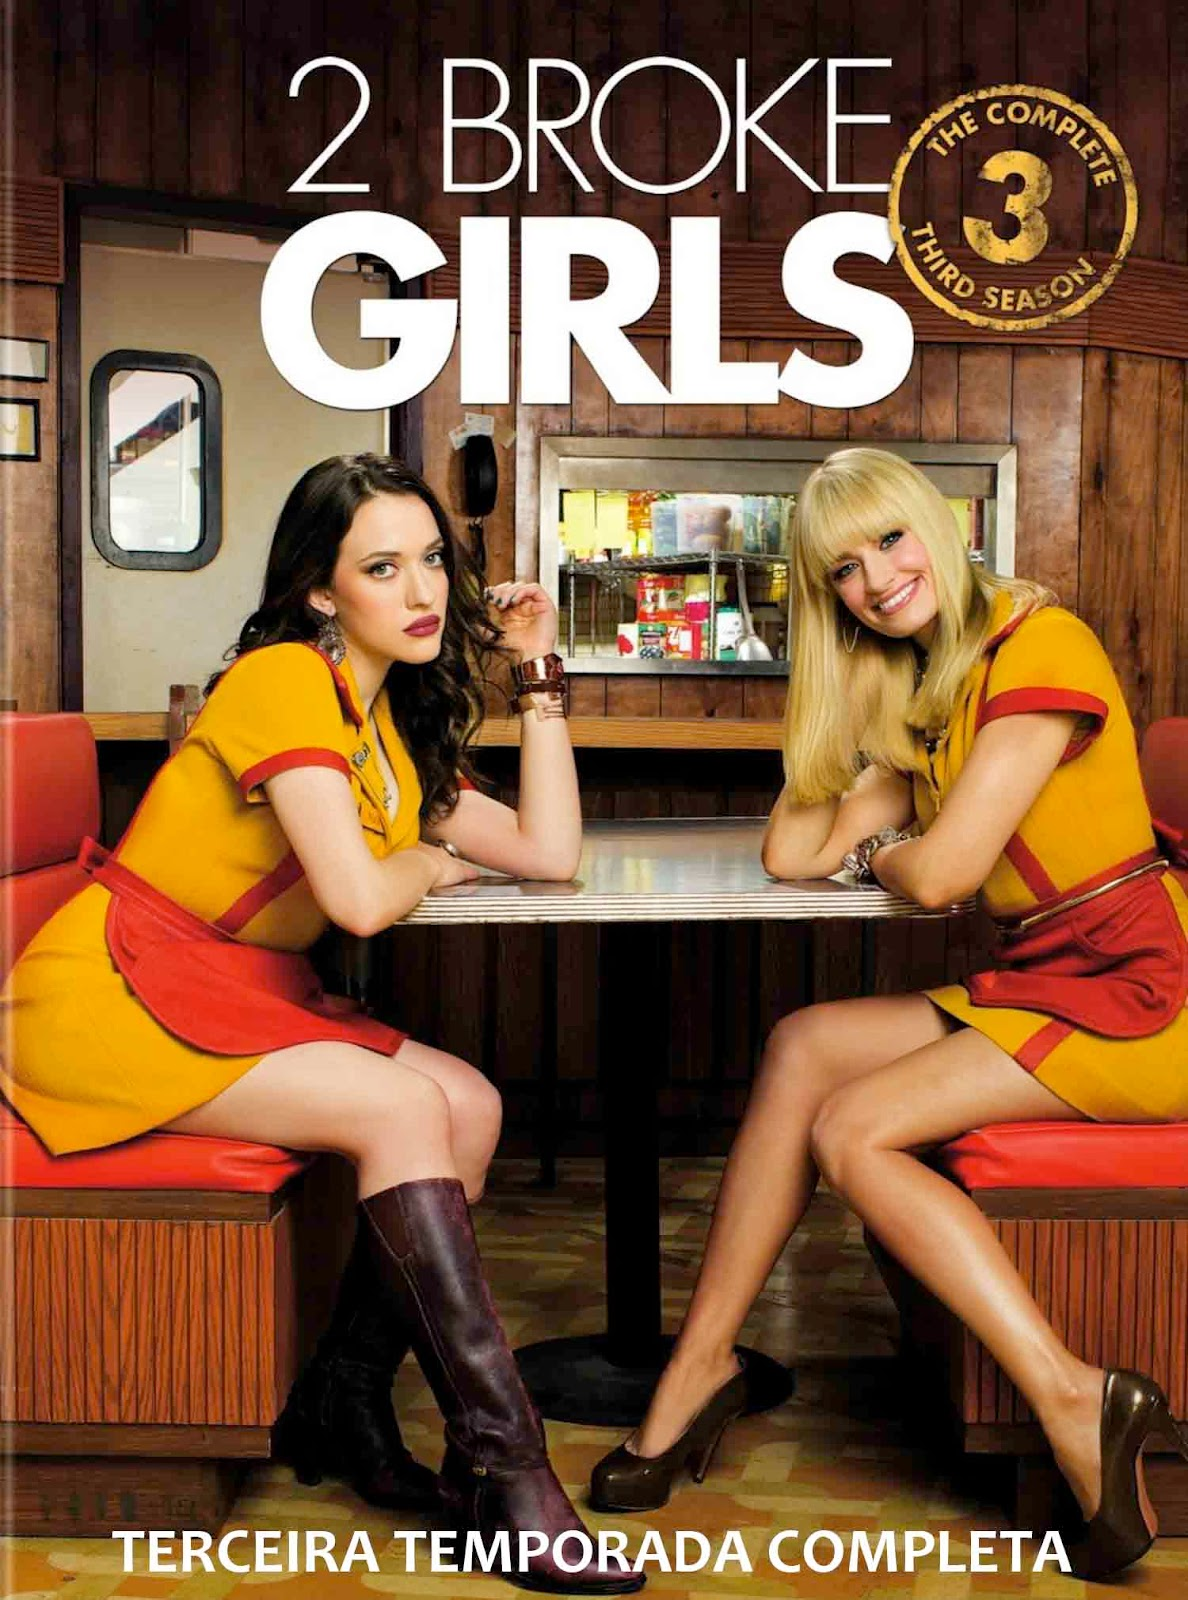 2 Broke Girls 3ª Temporada Torrent - BluRay 720p Dublado